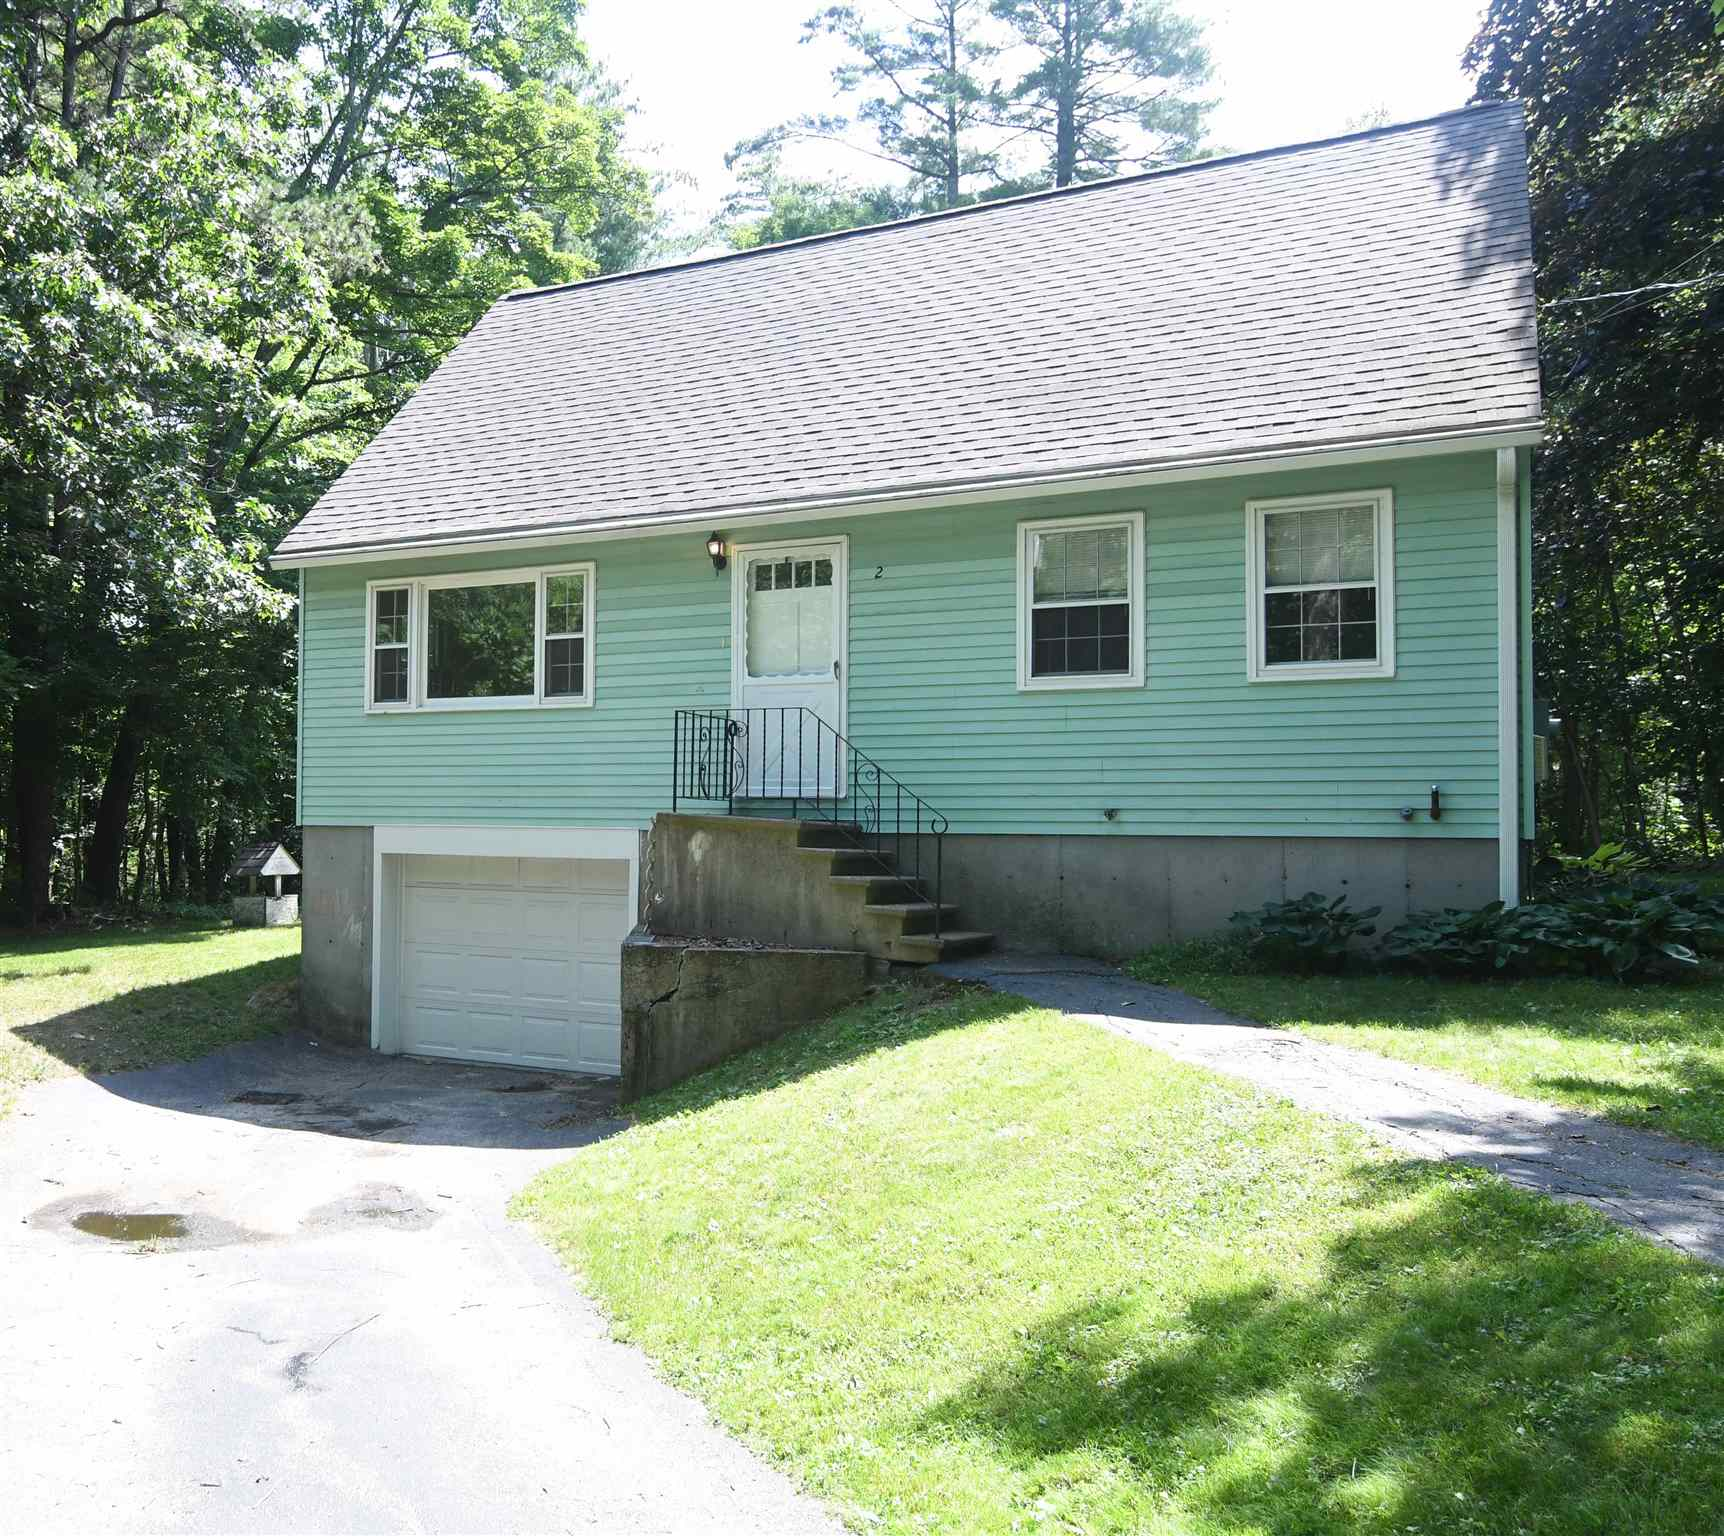 MLS 4815798: 2 Morrison Road, Derry NH